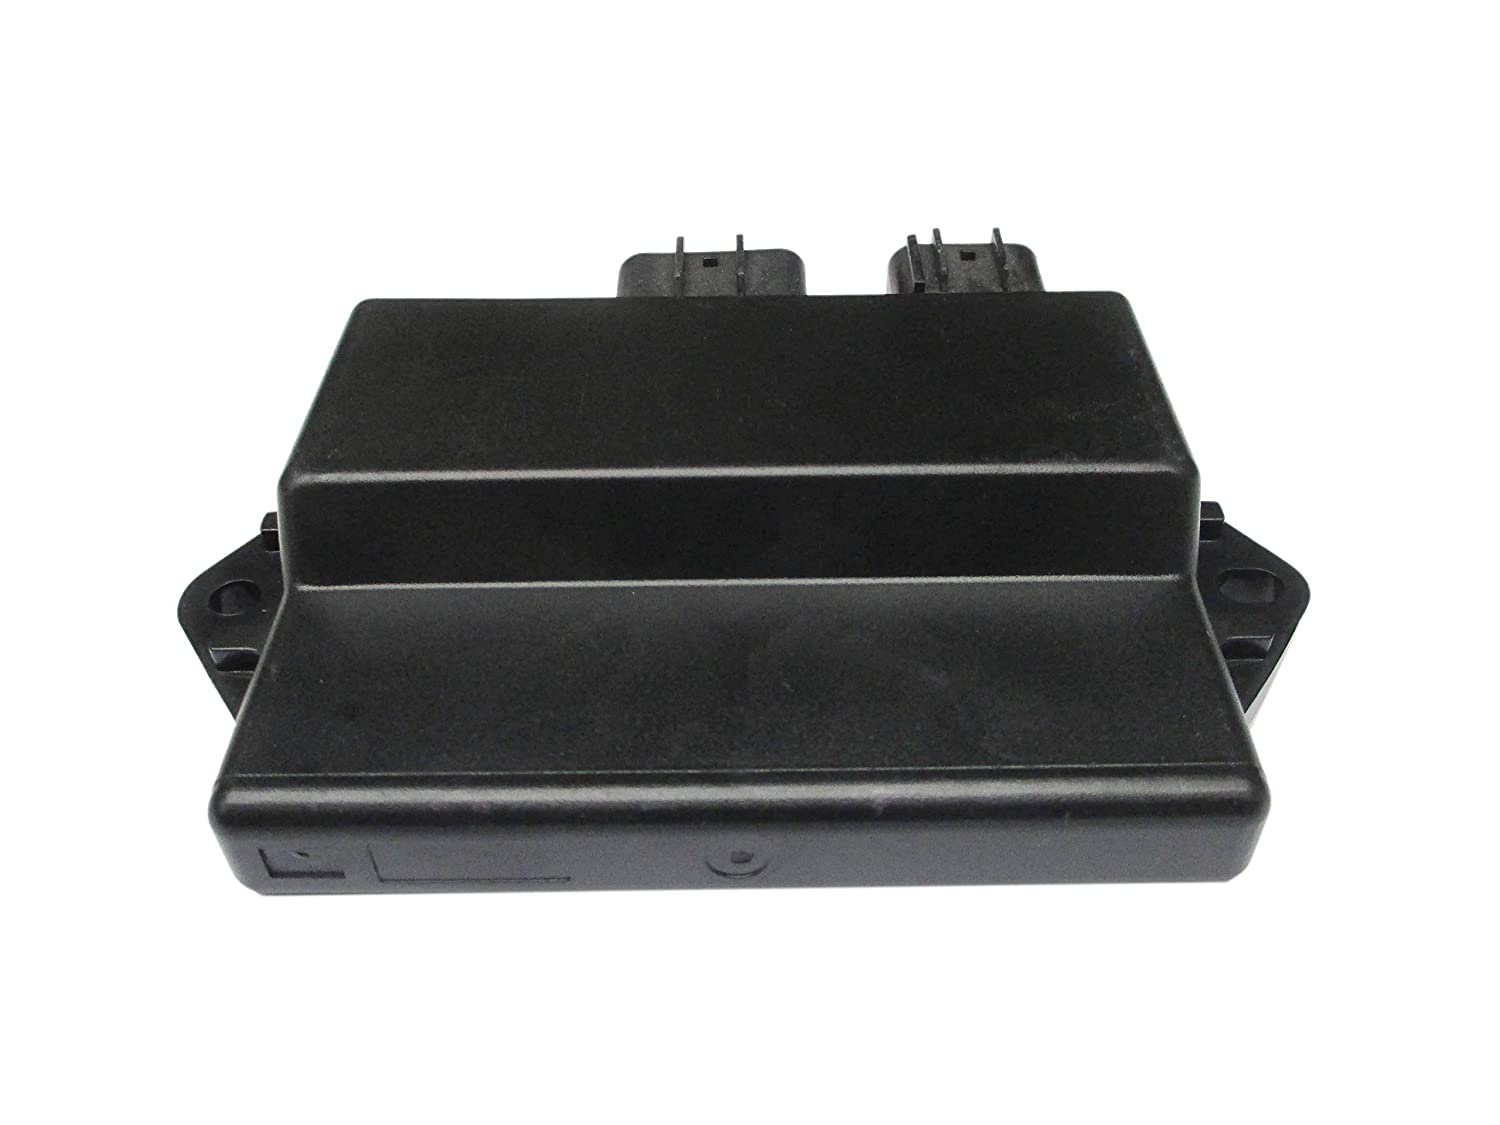 NEW! High Performance CDI Box Unit For Yamaha YFM 400 Kodiak 2000 2001 OE Repl.# 5GH-85540-10-00 JRSAUTO